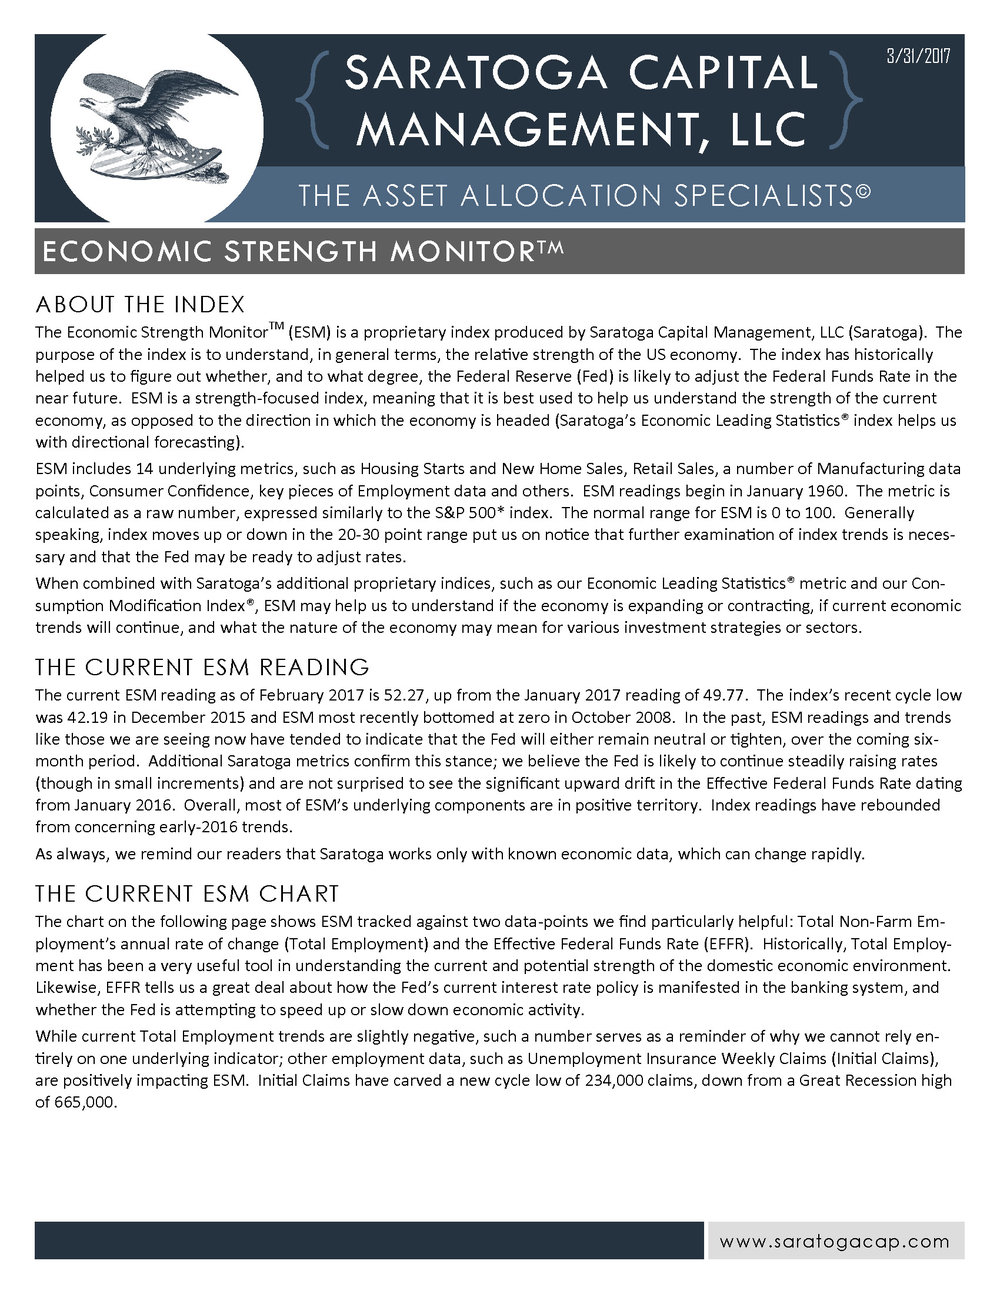 Click to View the Current ESM Fact Sheet